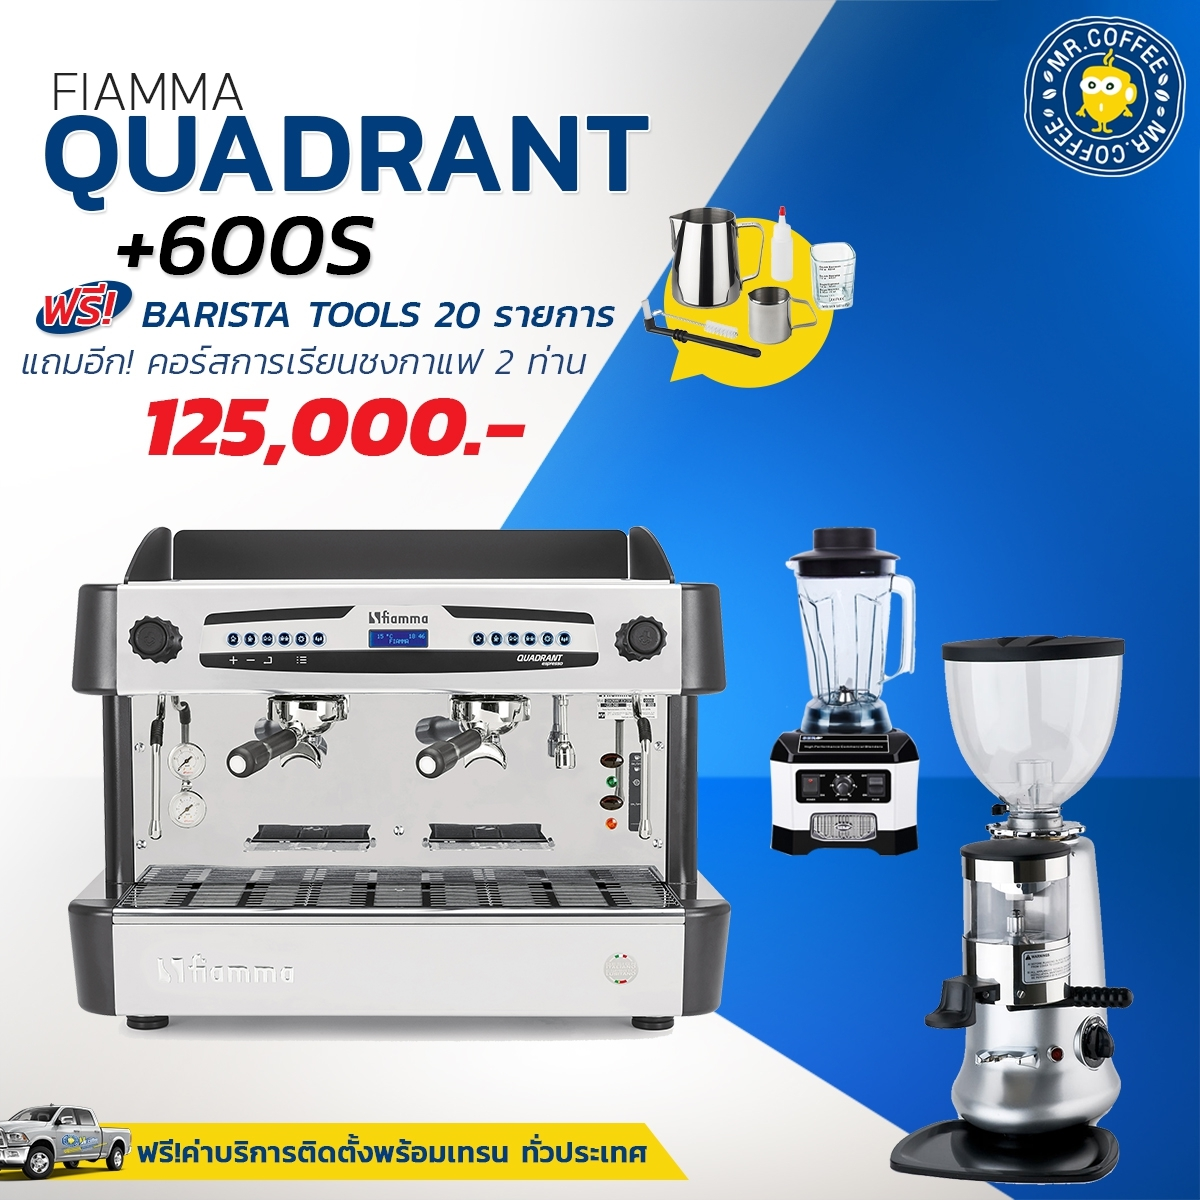 Set Fiamma Quadrant